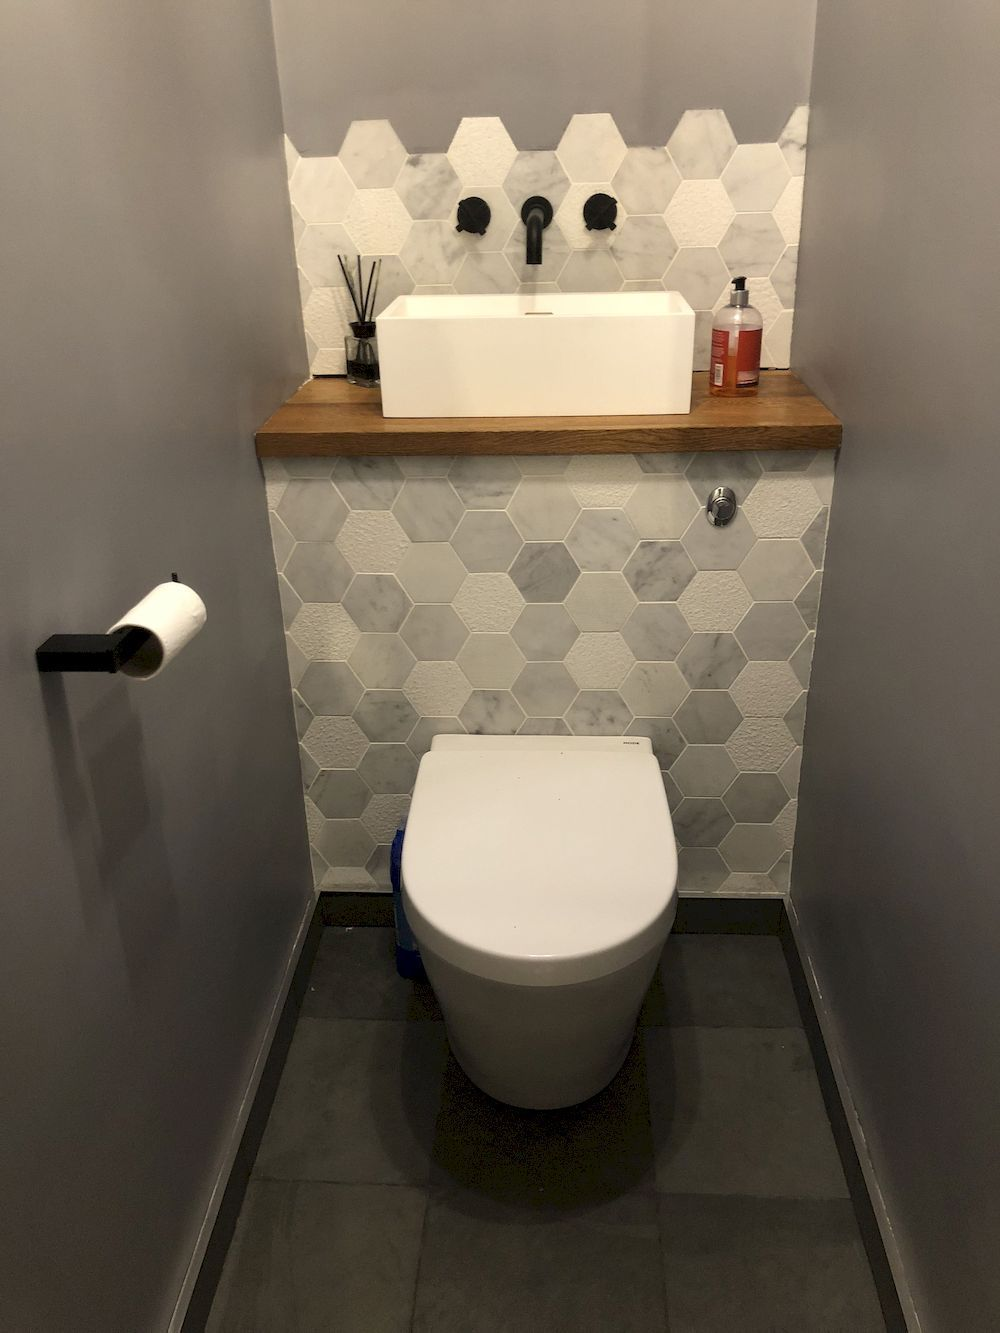 Bathrooms Design Under The Stairs The Space Under The Stairs Is Converted Into Storage Space In Bathroom Under Stairs Small Toilet Room Small Bathroom Makeover